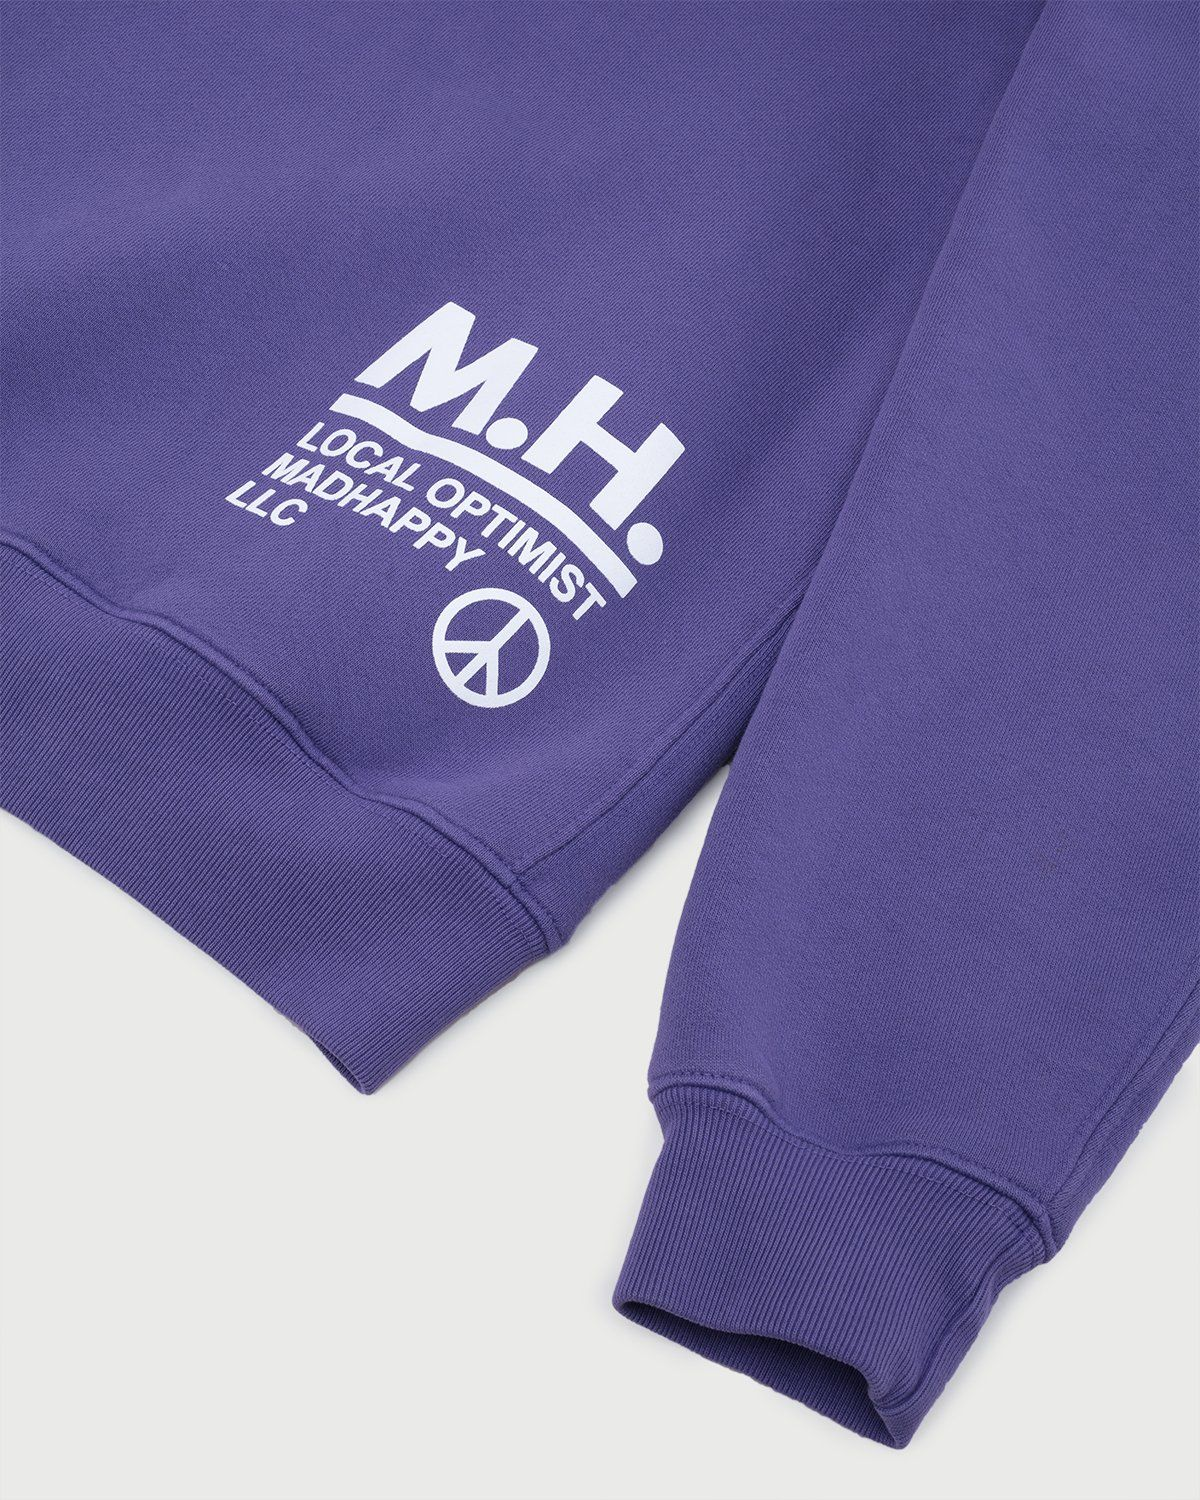 Colette Mon Amour x Madhappy  — Hoodie Purple - Image 3